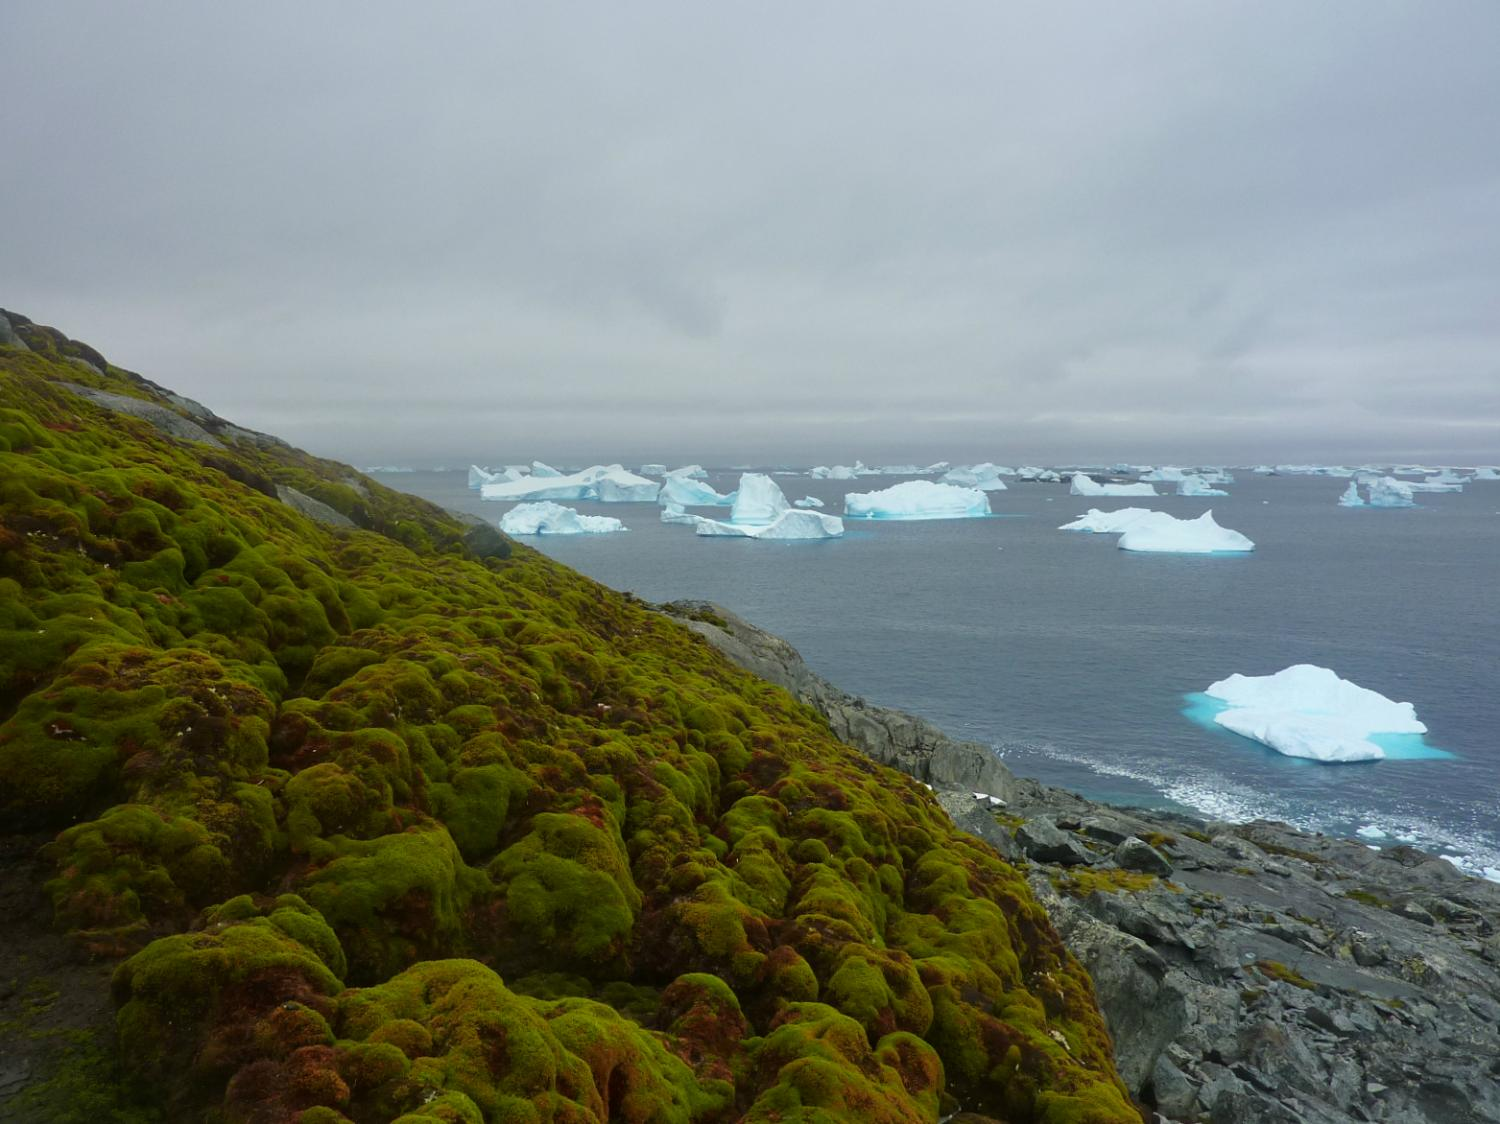 Going green: Climate change having 'dramatic' effect on Antarctica's complexion